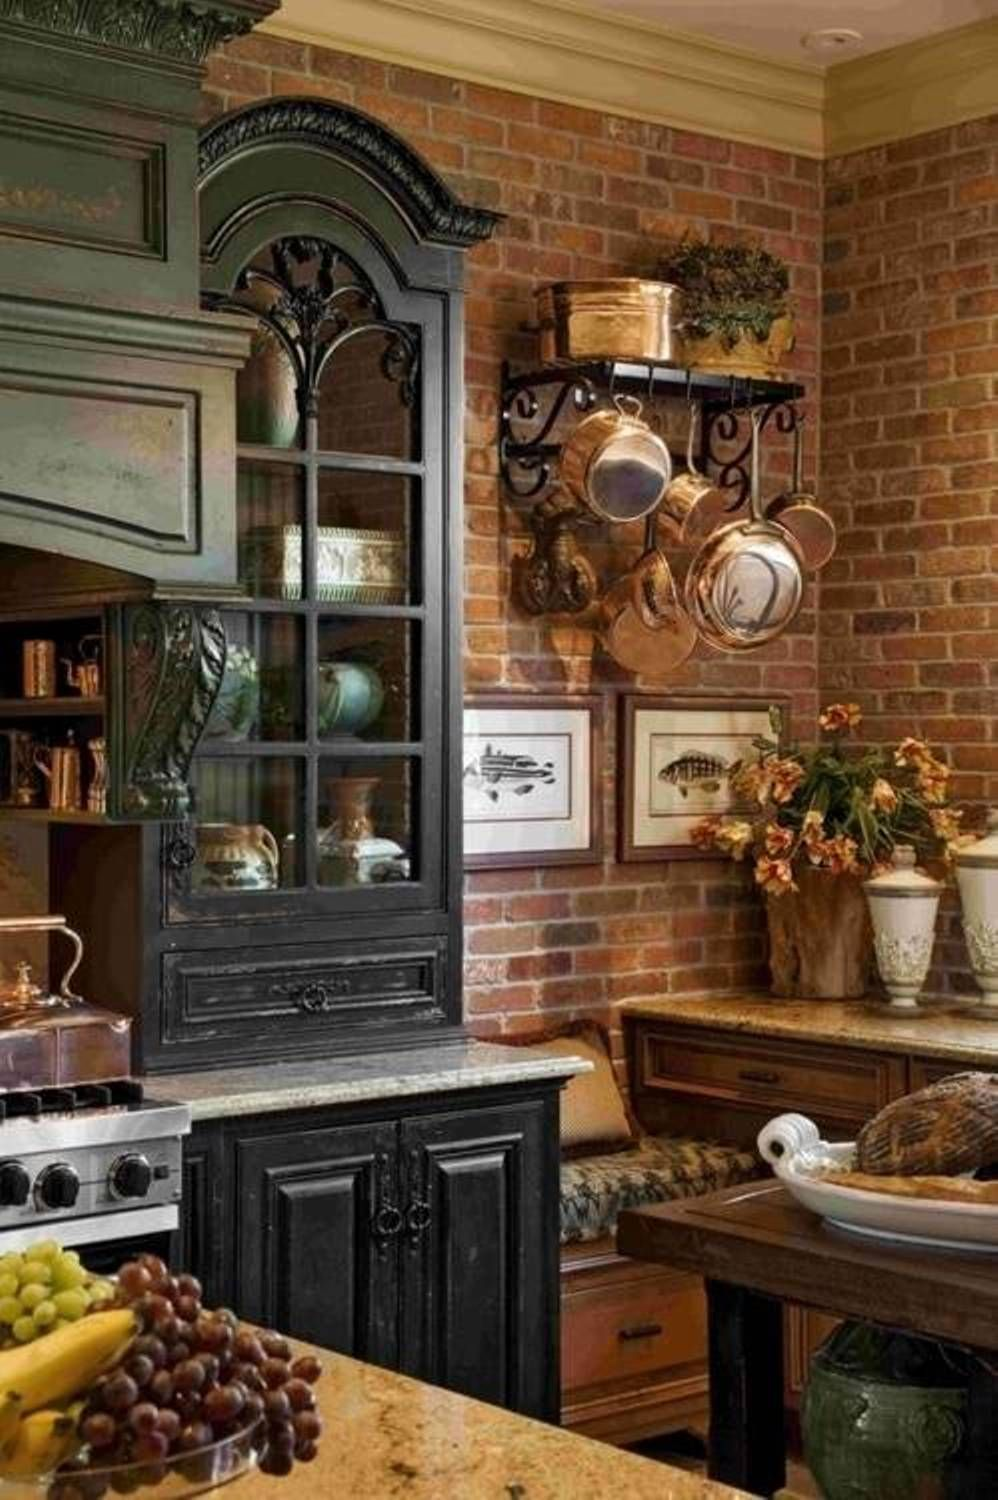 Rustic Kitchen Delectable Mid Century Rustic Kitchen Cabinets Design With Exposed Red Brick